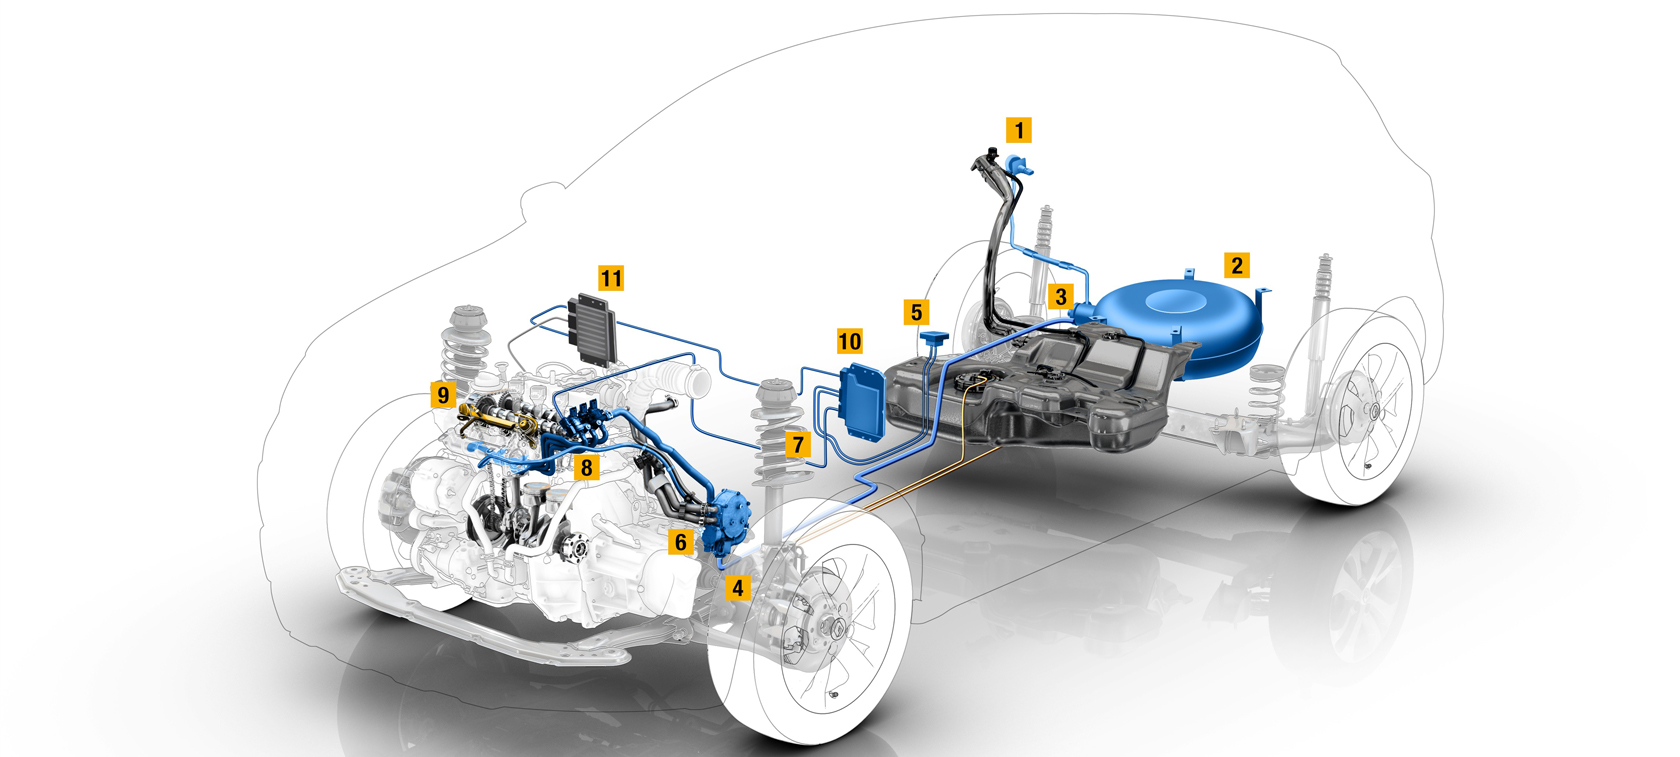 Renault builds dedicated LPG engine